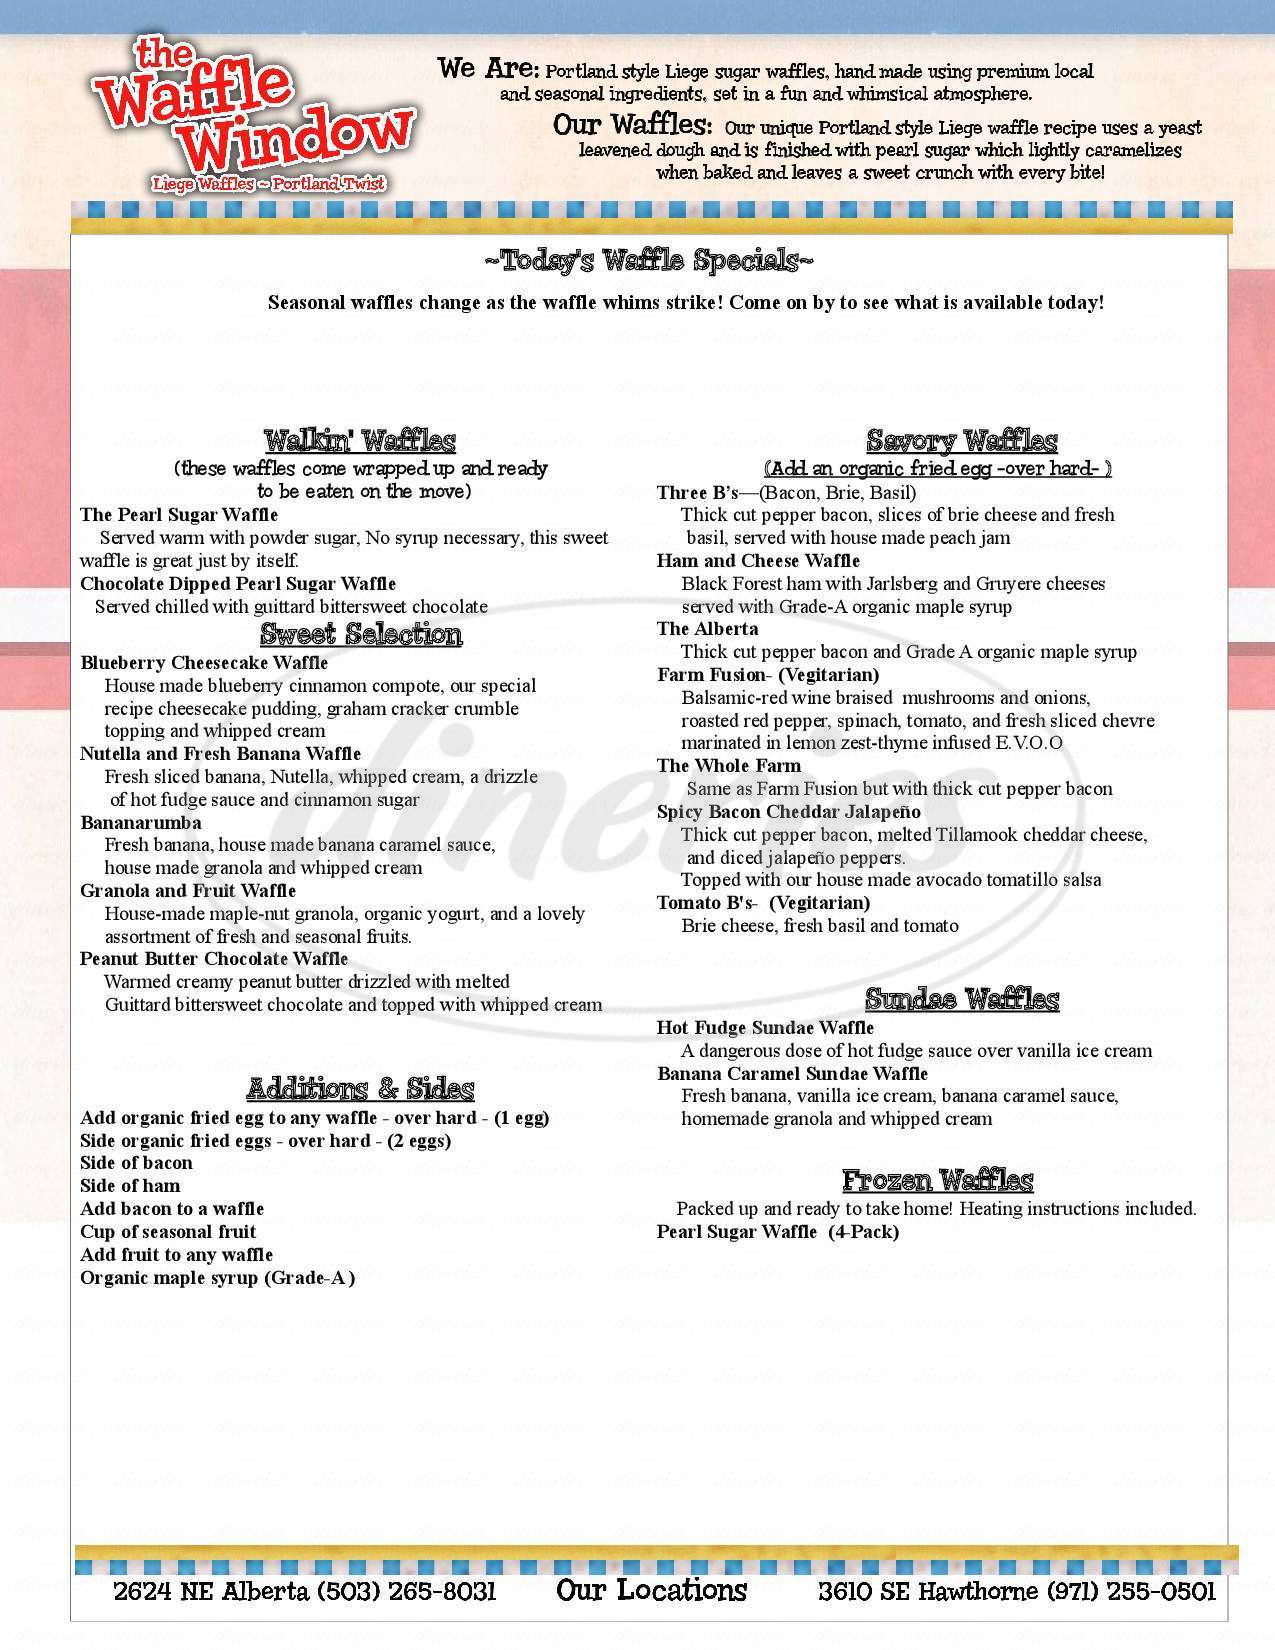 menu for The Waffle Window